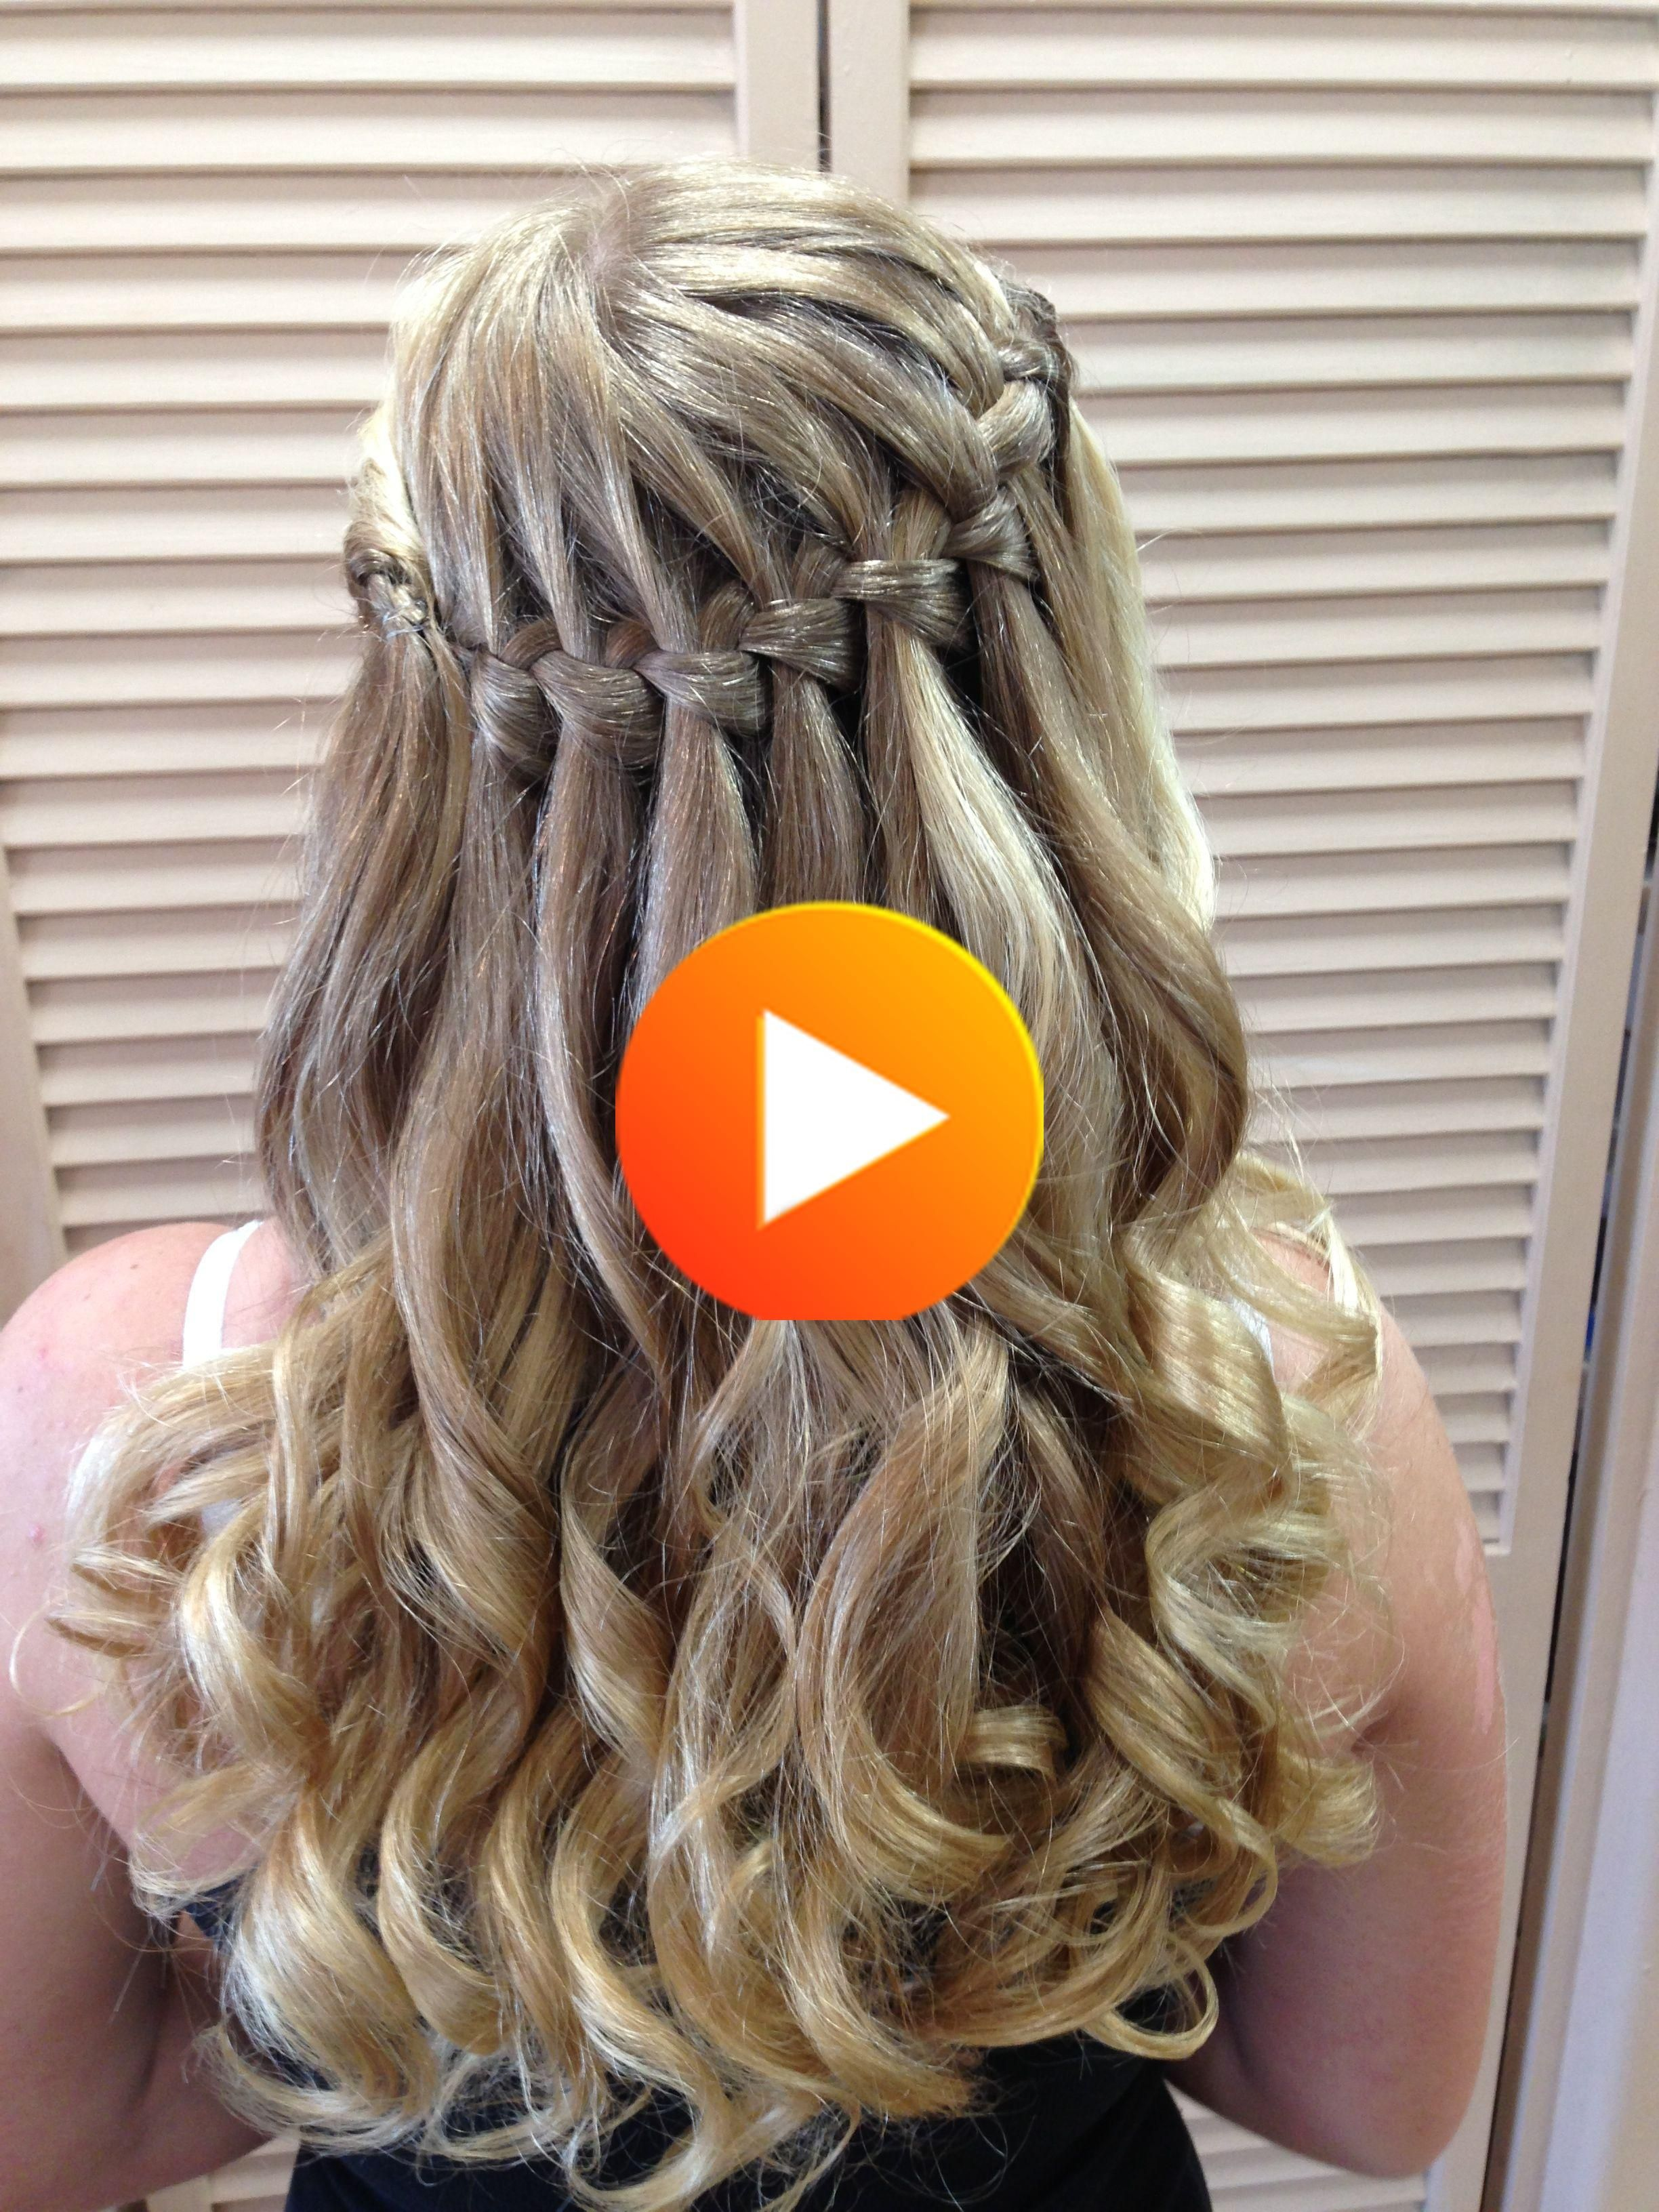 Cute Hairstyles For 8th Grade Dance For Dances In 2020 Hair Styles Graduation Hairstyles Dance Hairstyles